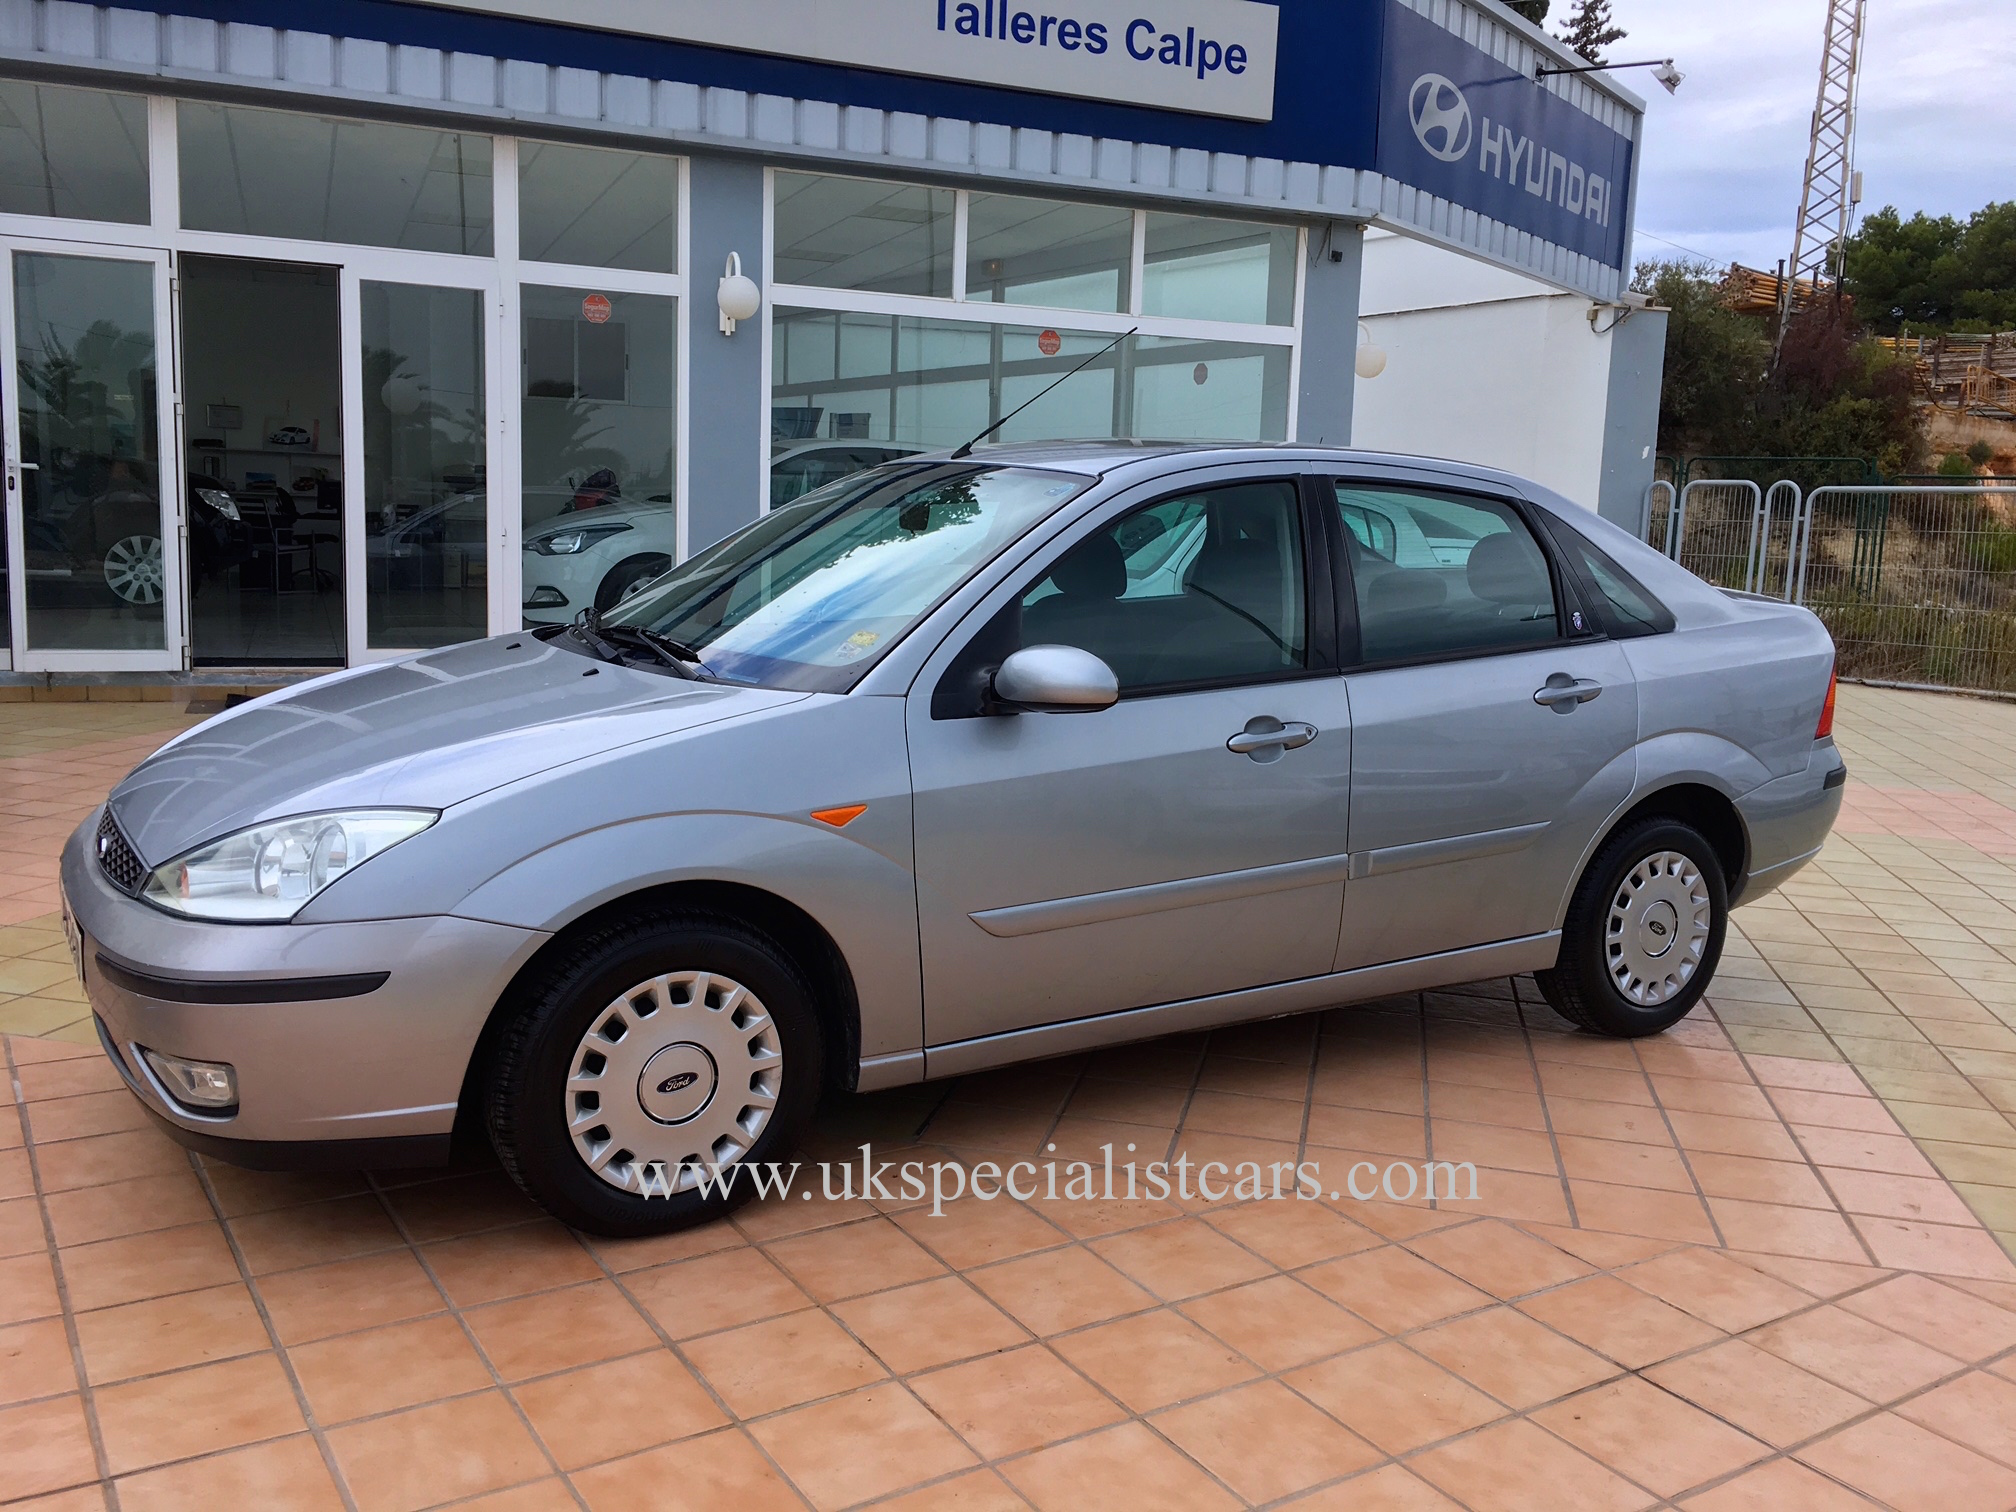 Chevrolet Dealer Uk >> Ford Focus 1.6 Ghia Saloon - AUTOMATIC - LHD In Spain